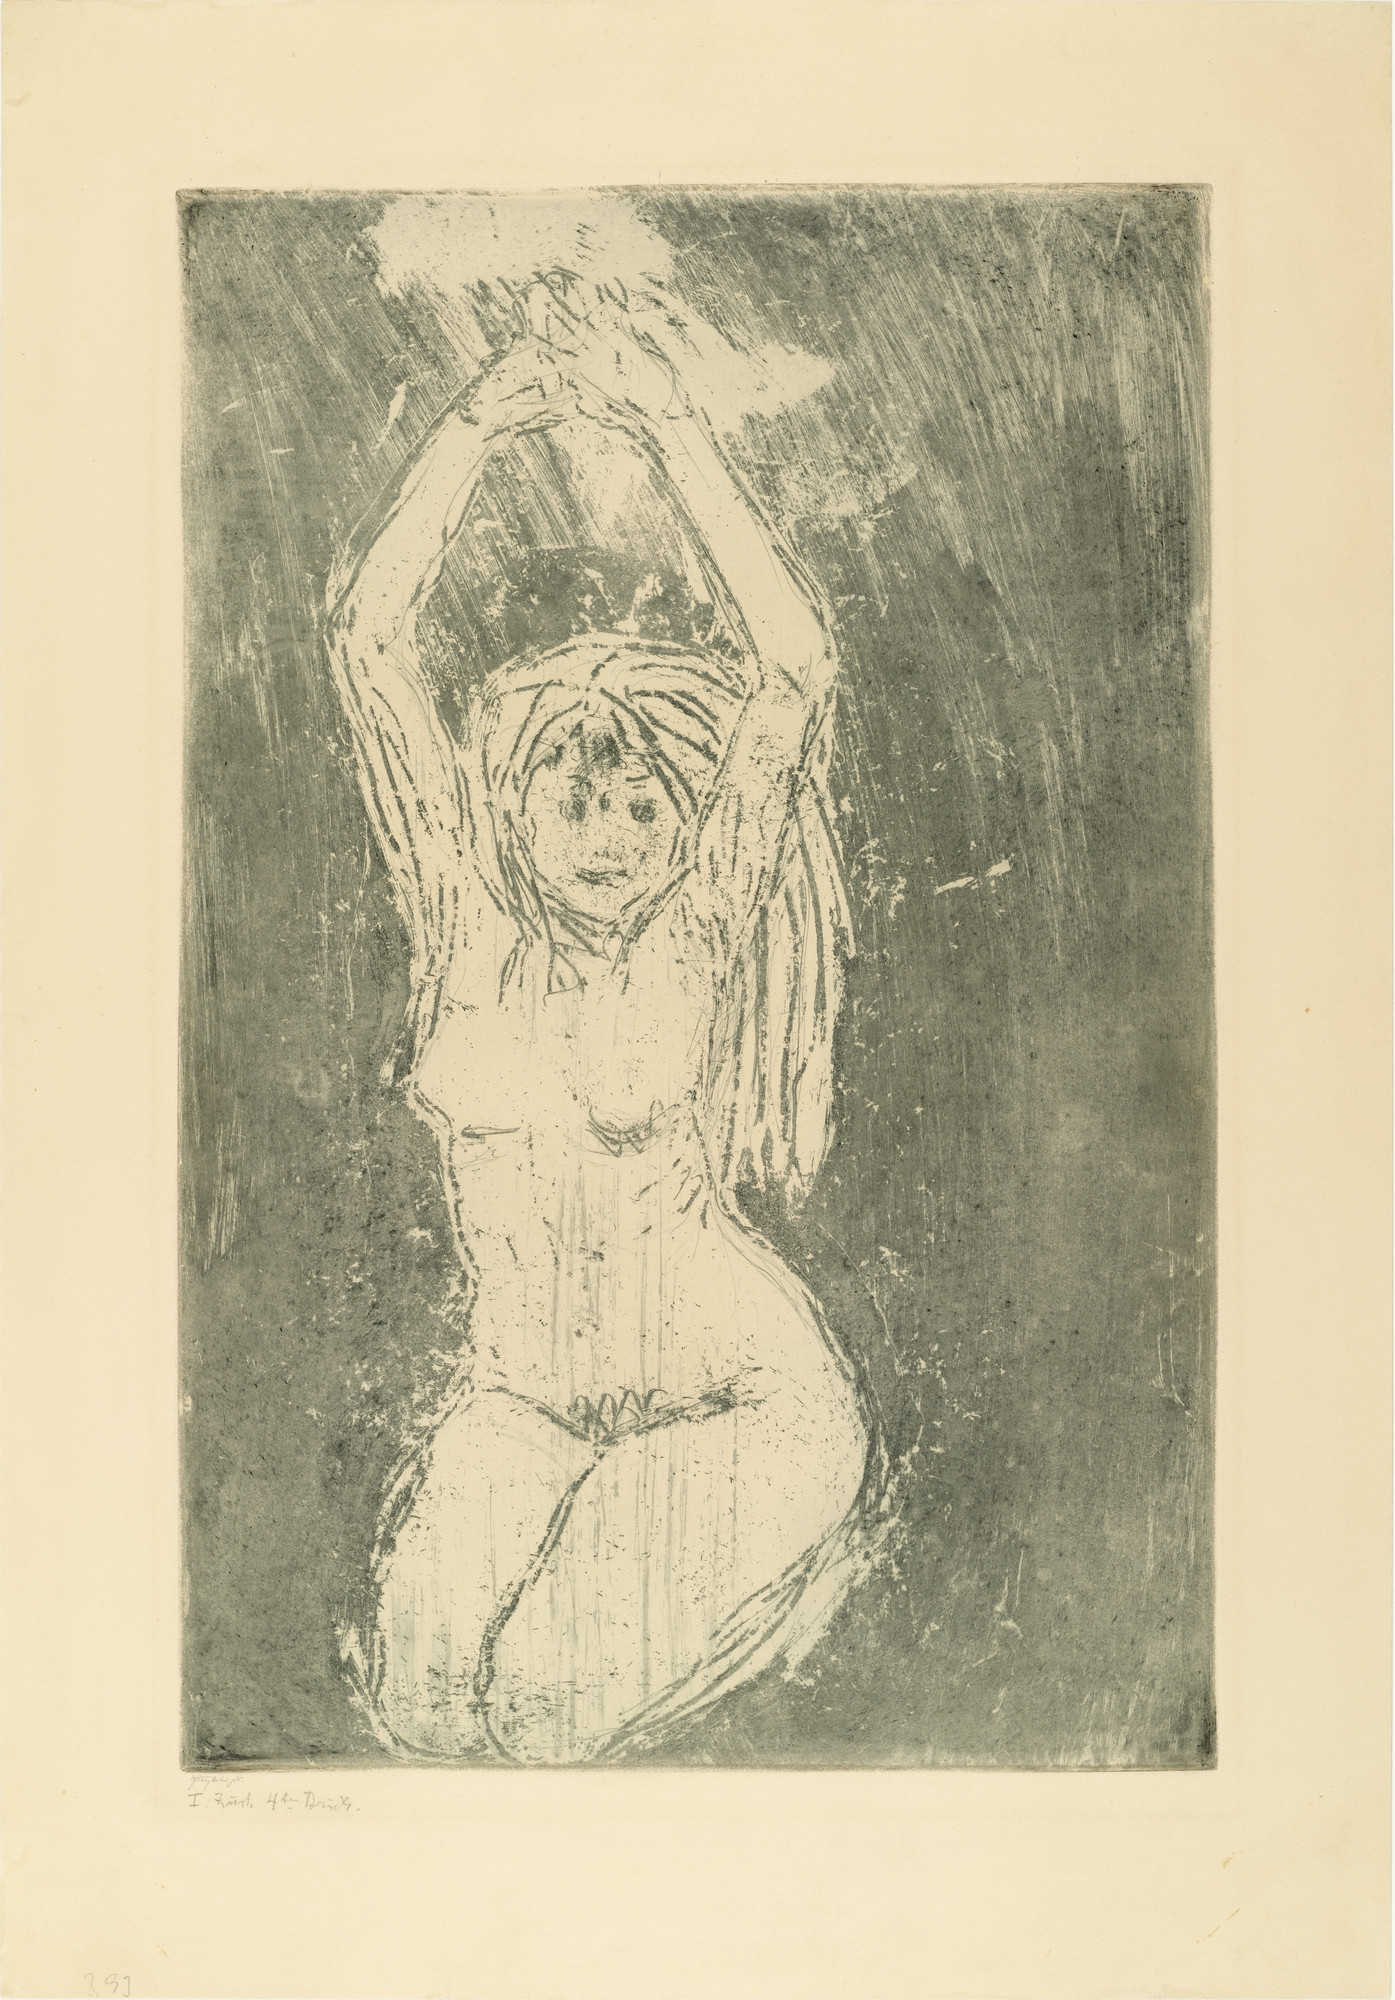 Emil Nolde. Nude with Raised Arms (Akt mit erhobenen Armen). (1908)